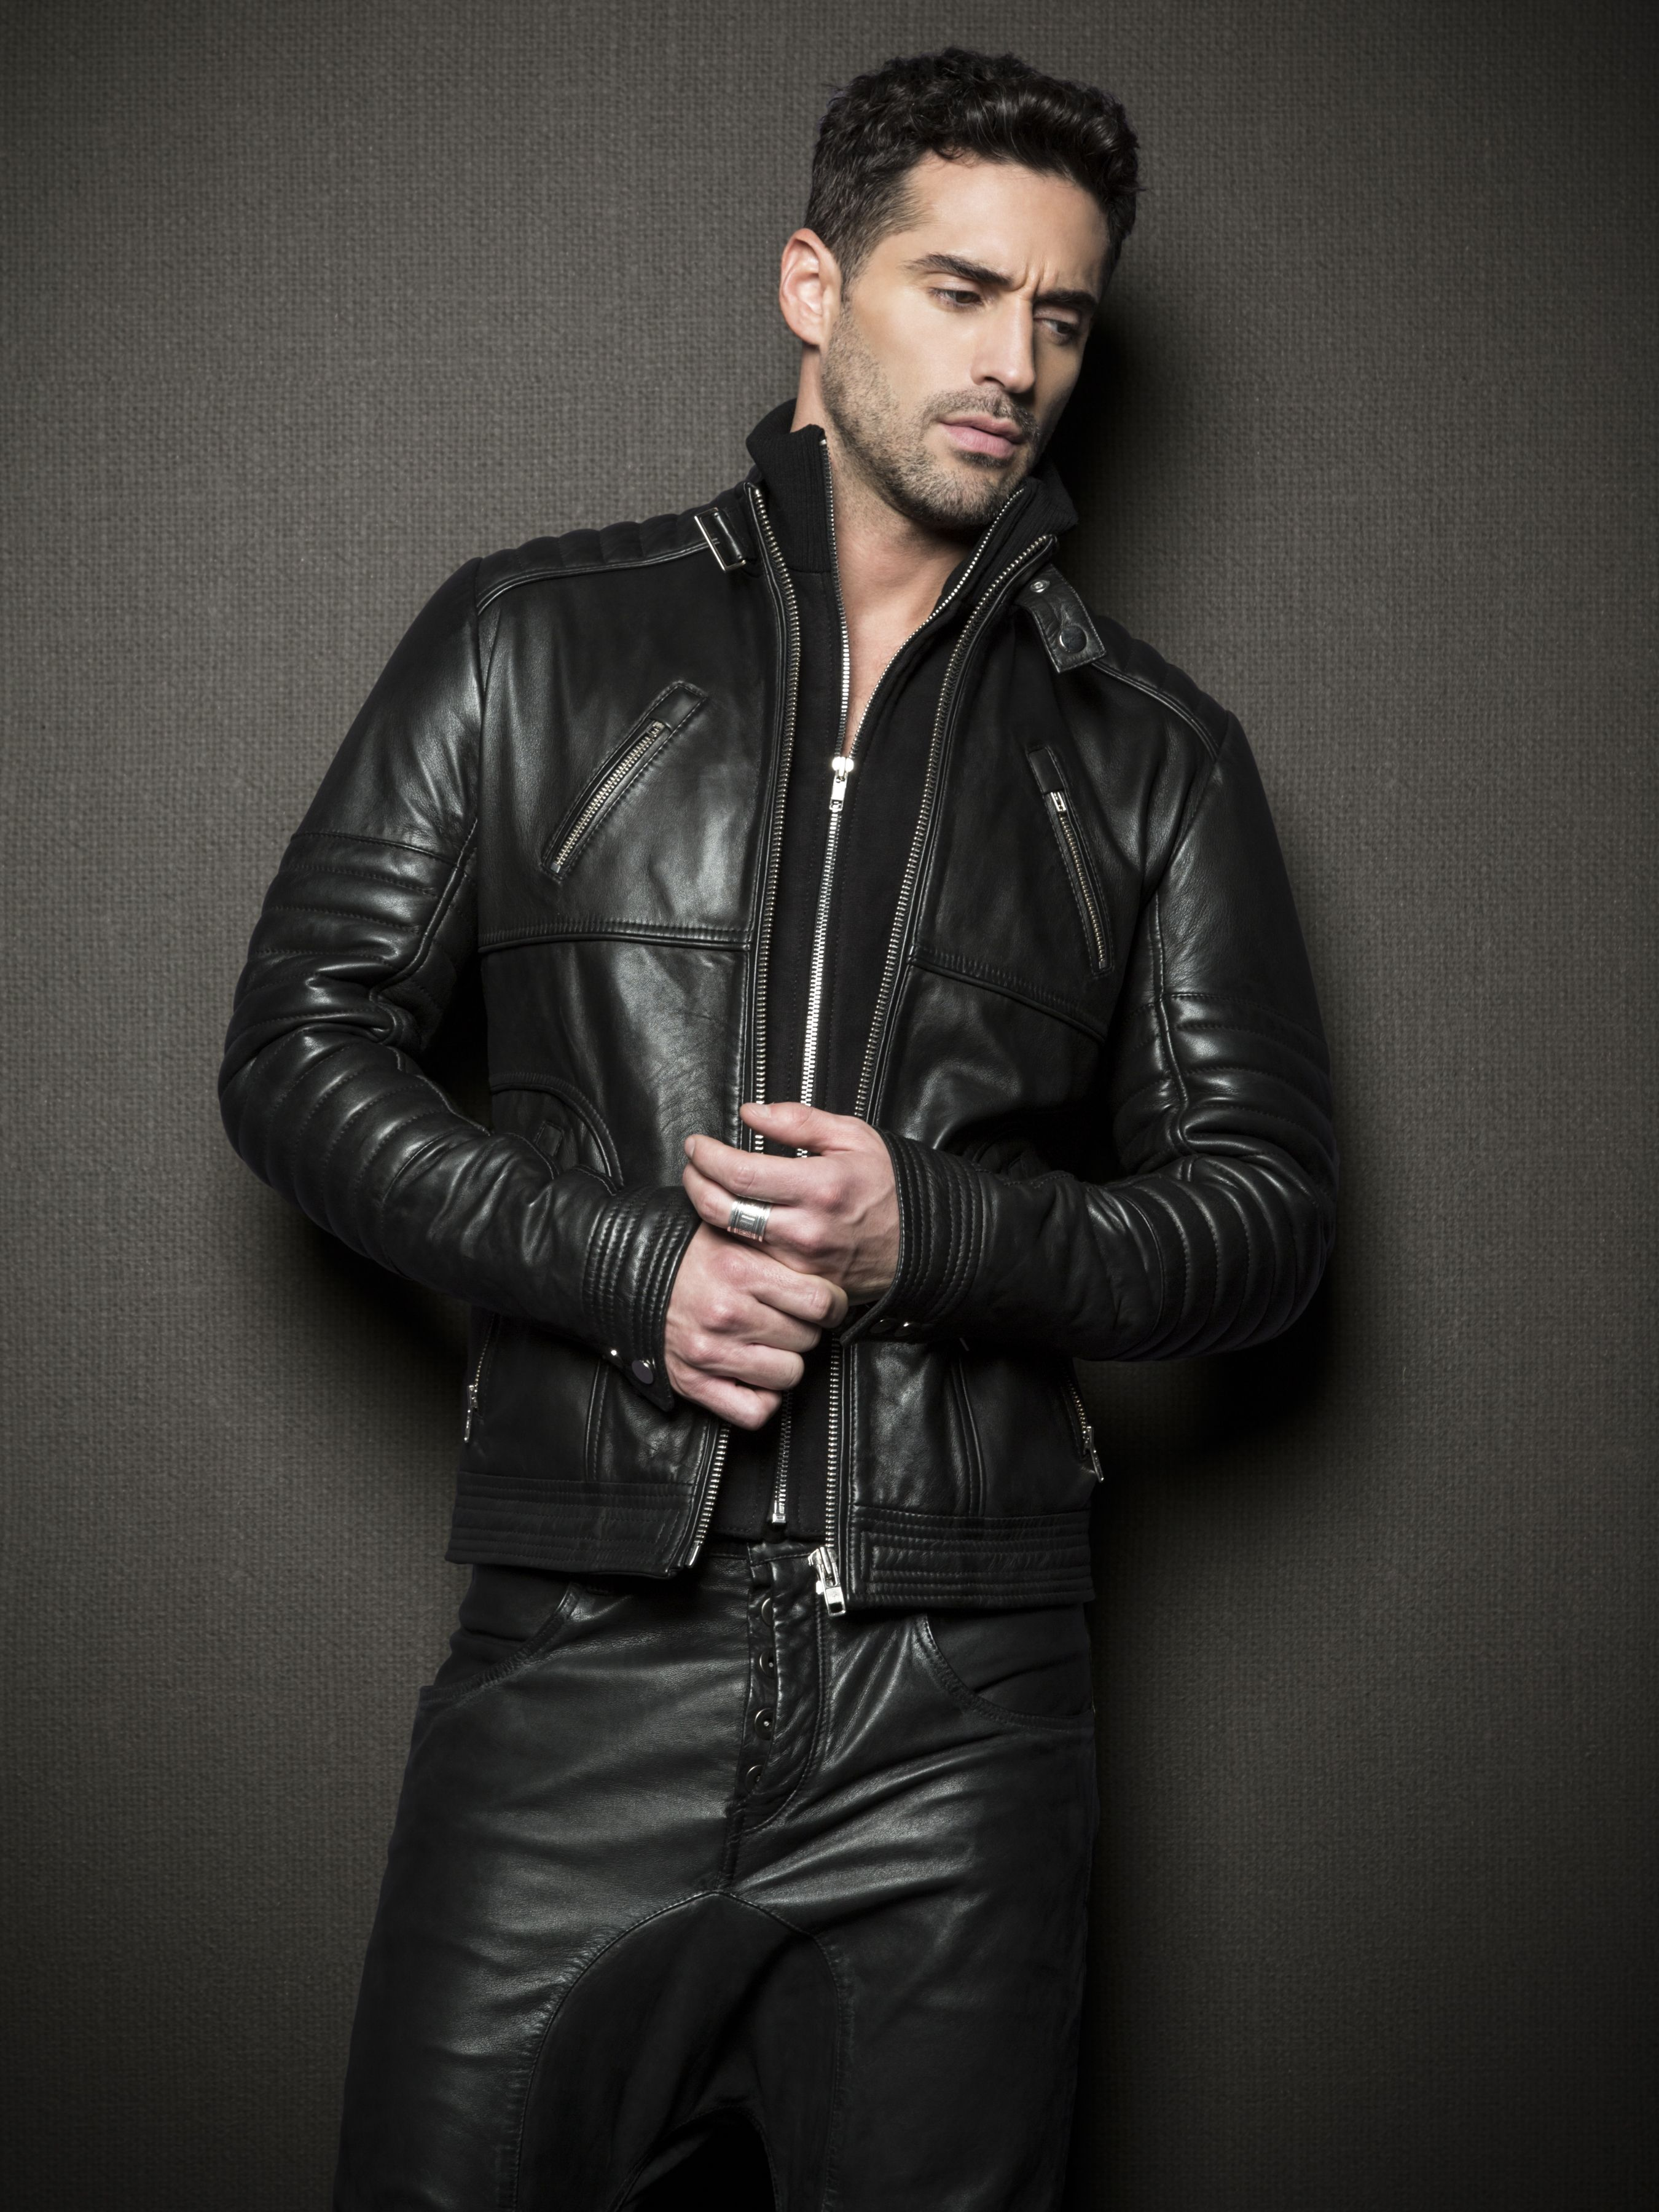 Leather pants and jacket